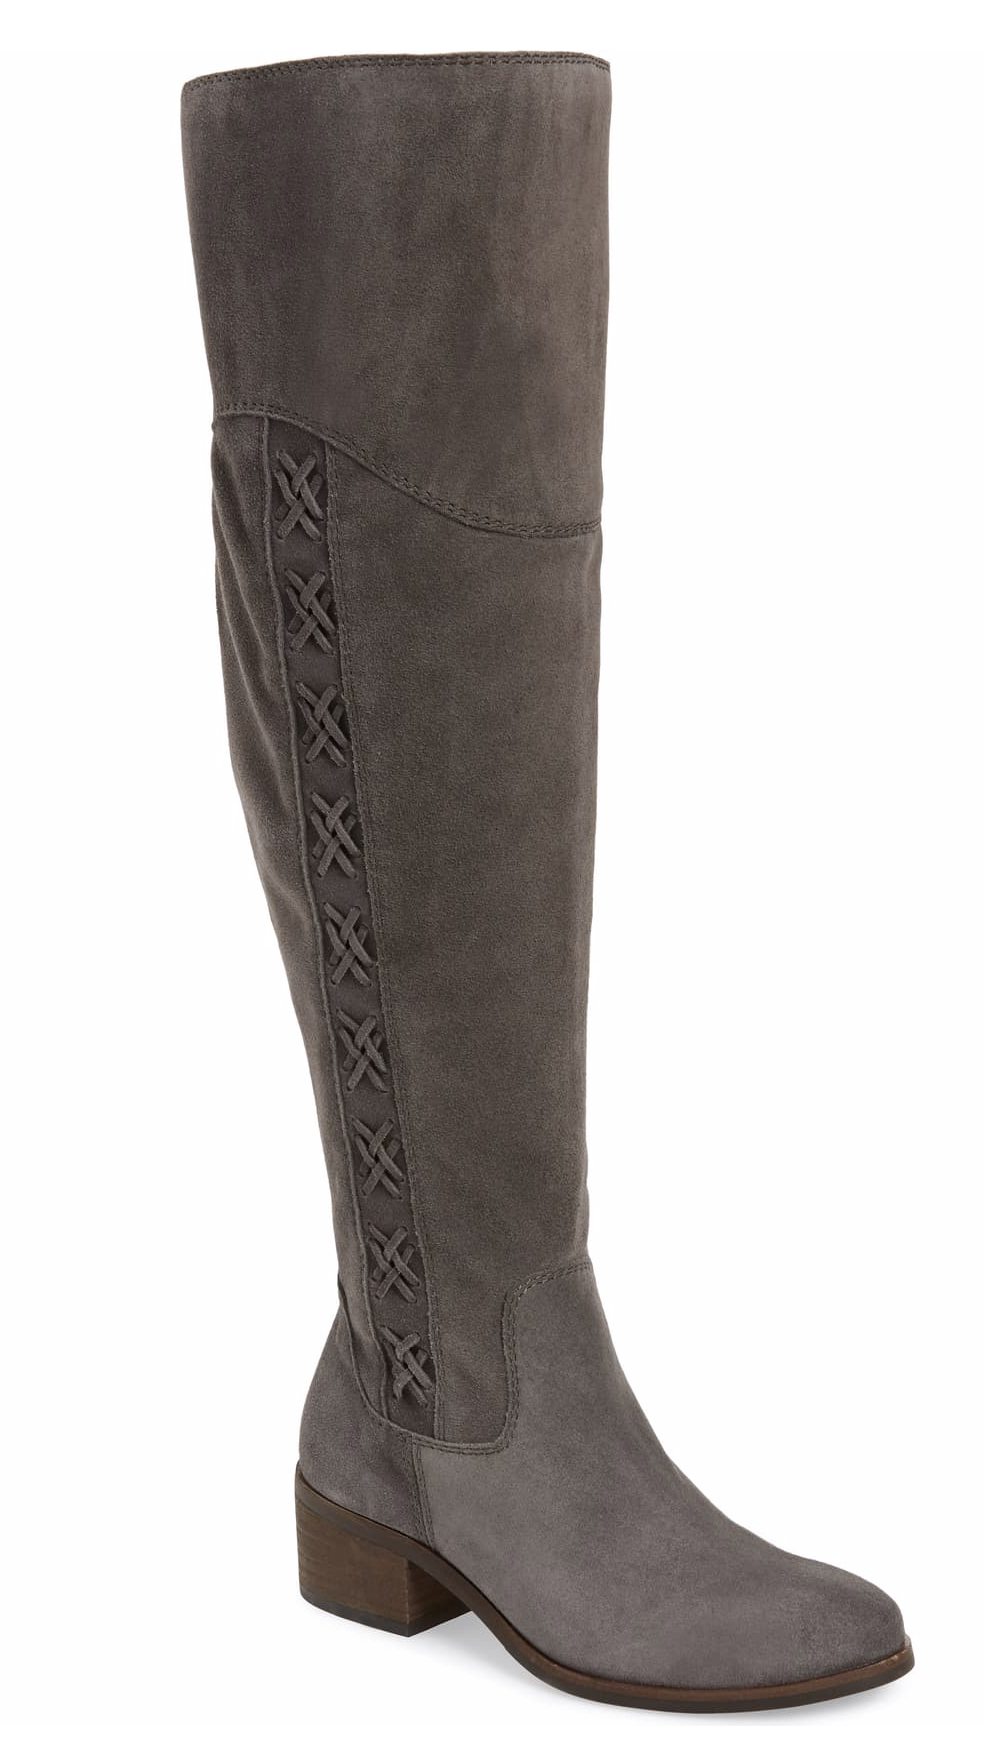 Vince Camuto Kreesell Knee High Boot - $159.90